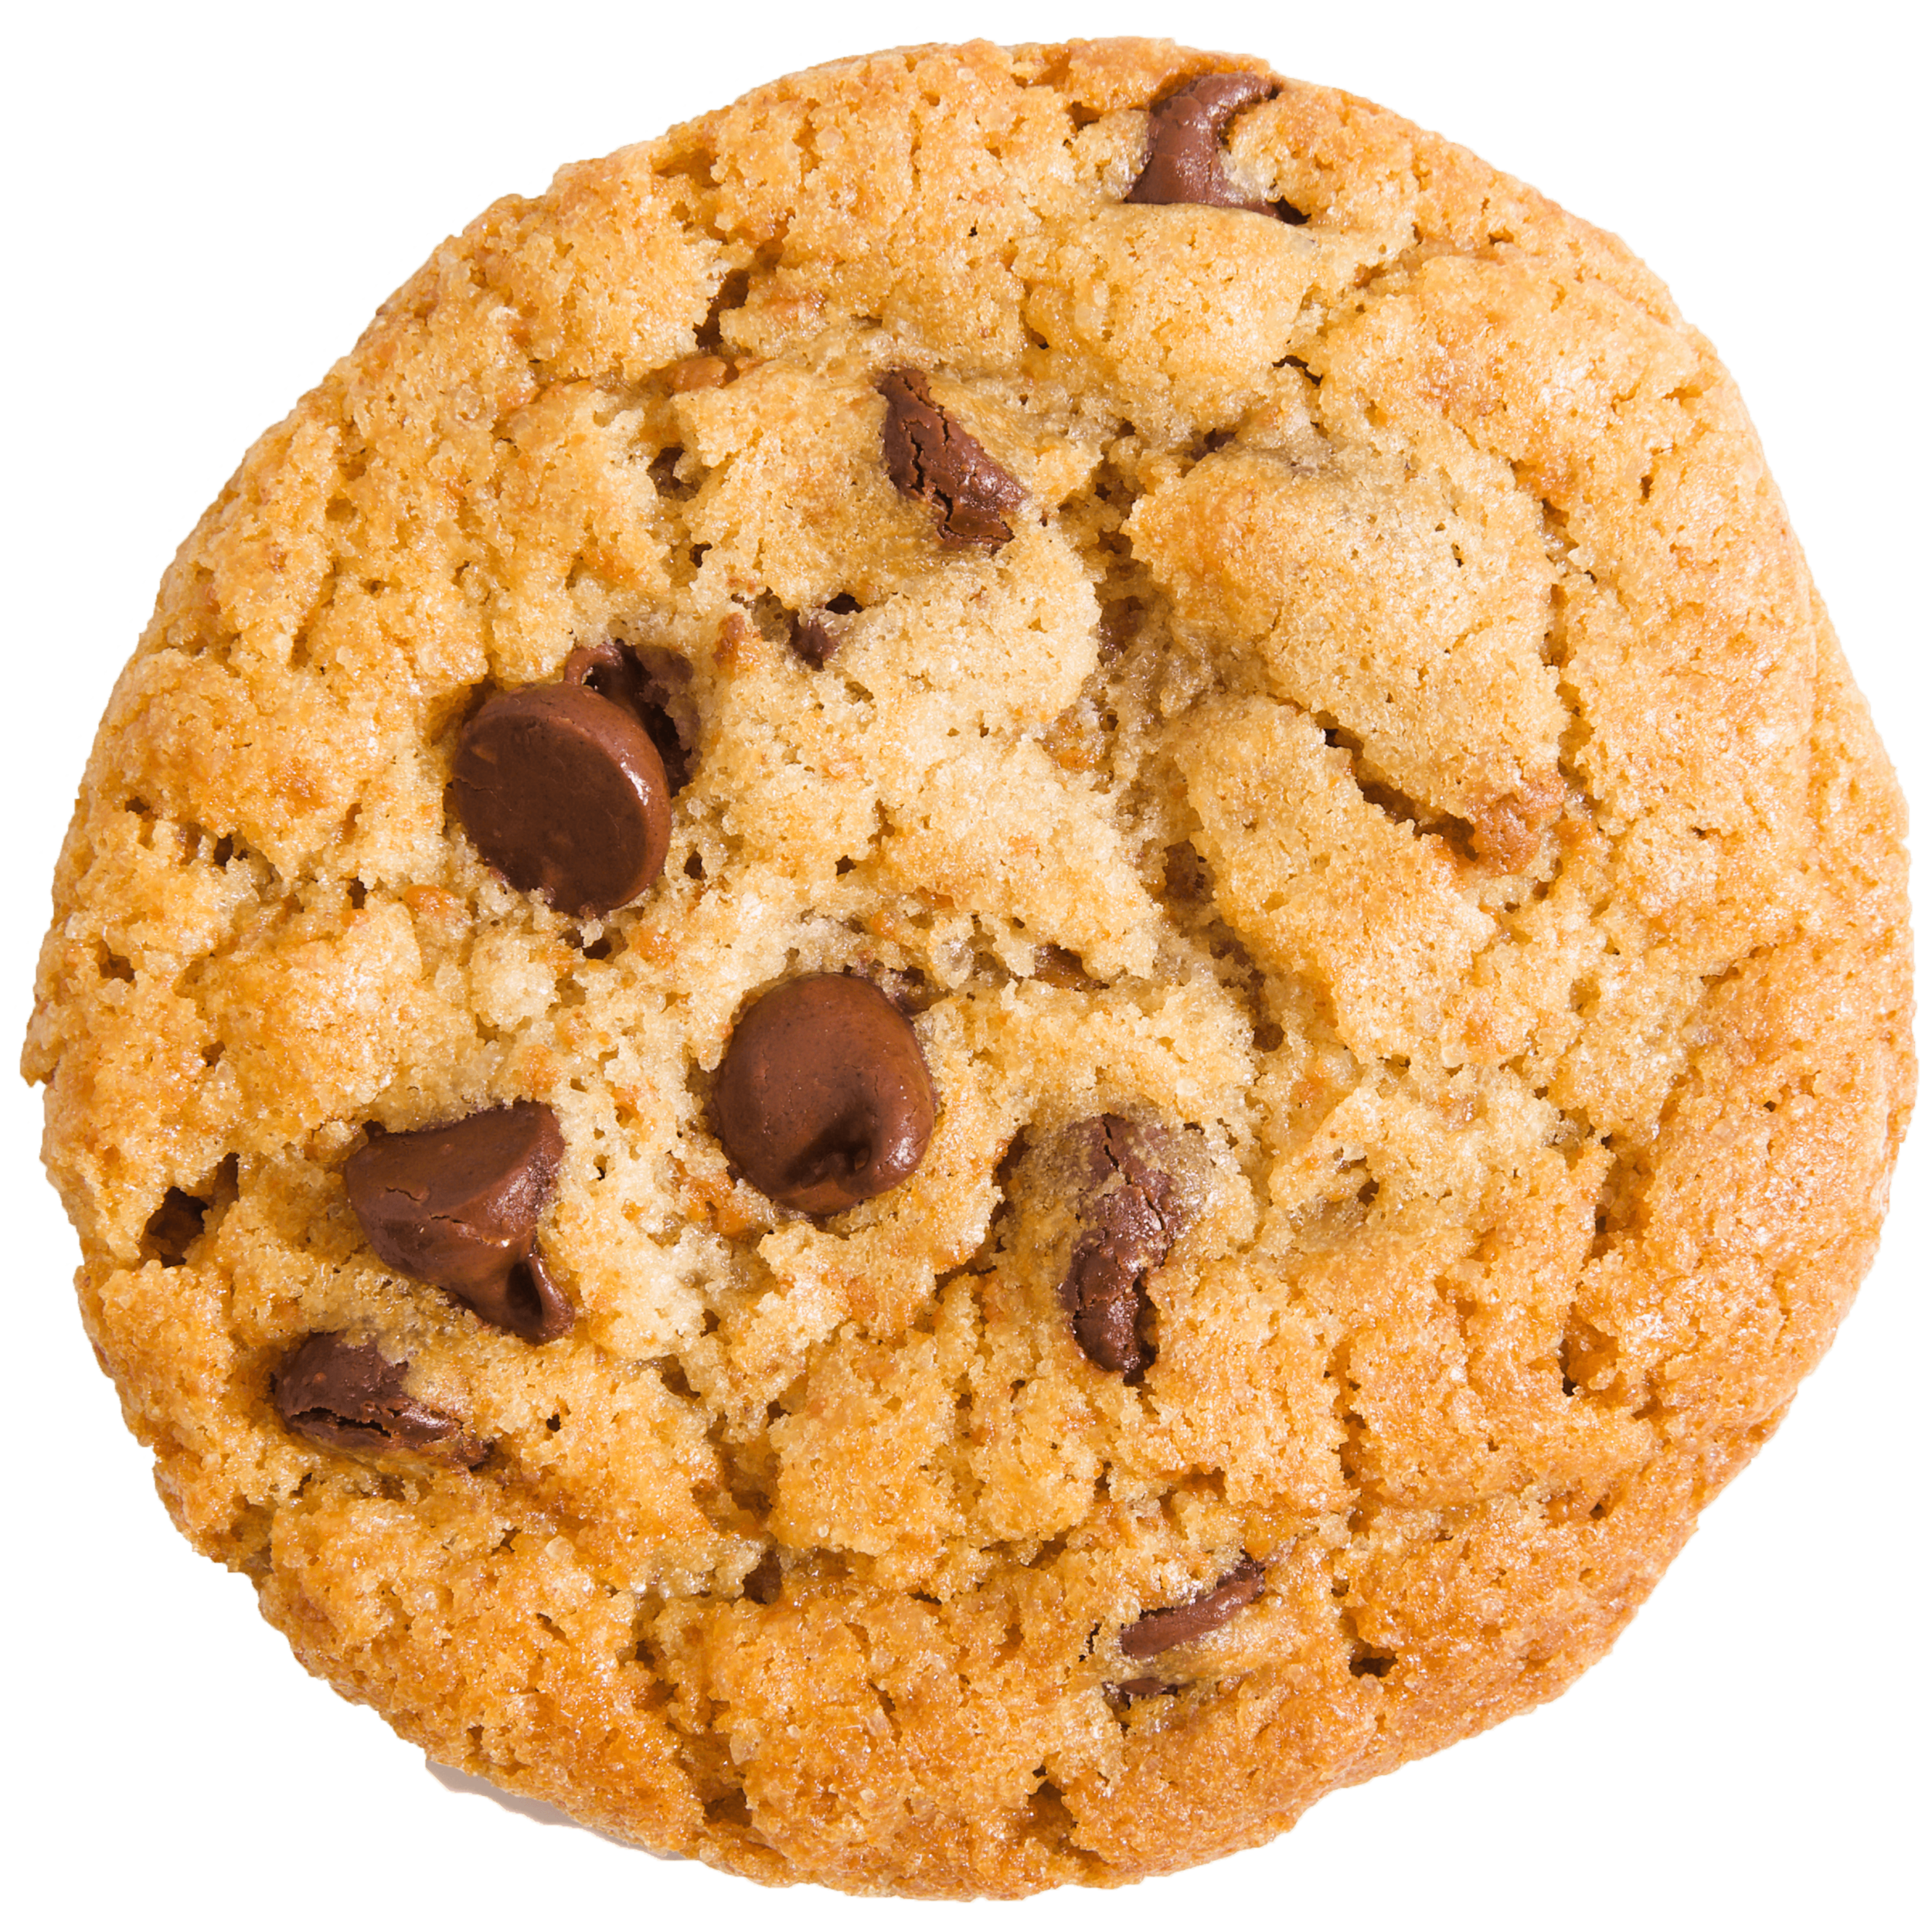 Cookie flavor 17 transparent.png